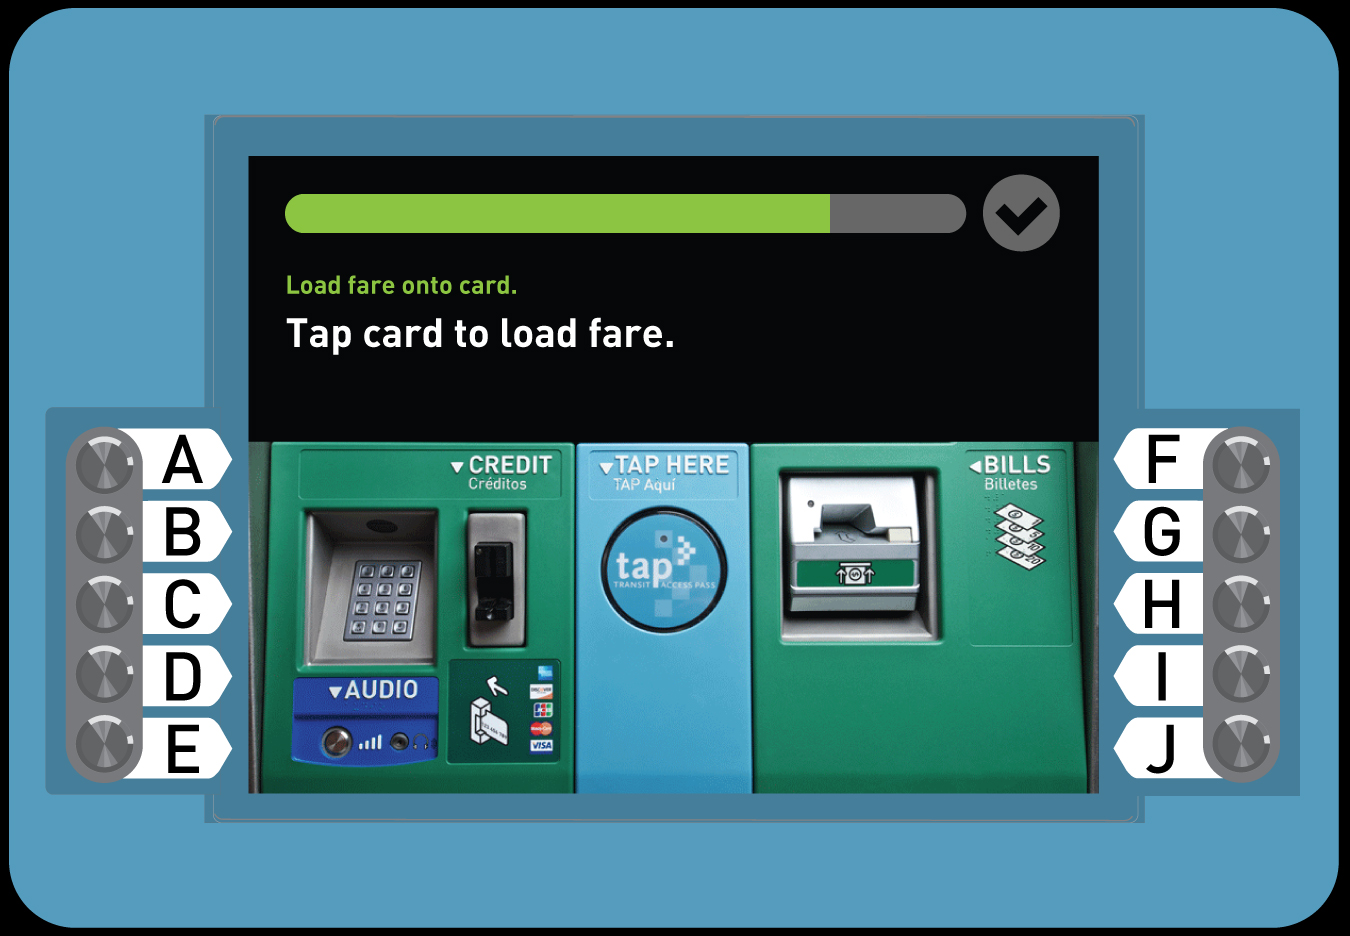 8. How to Load Senior TAP card with 1-Way Fare